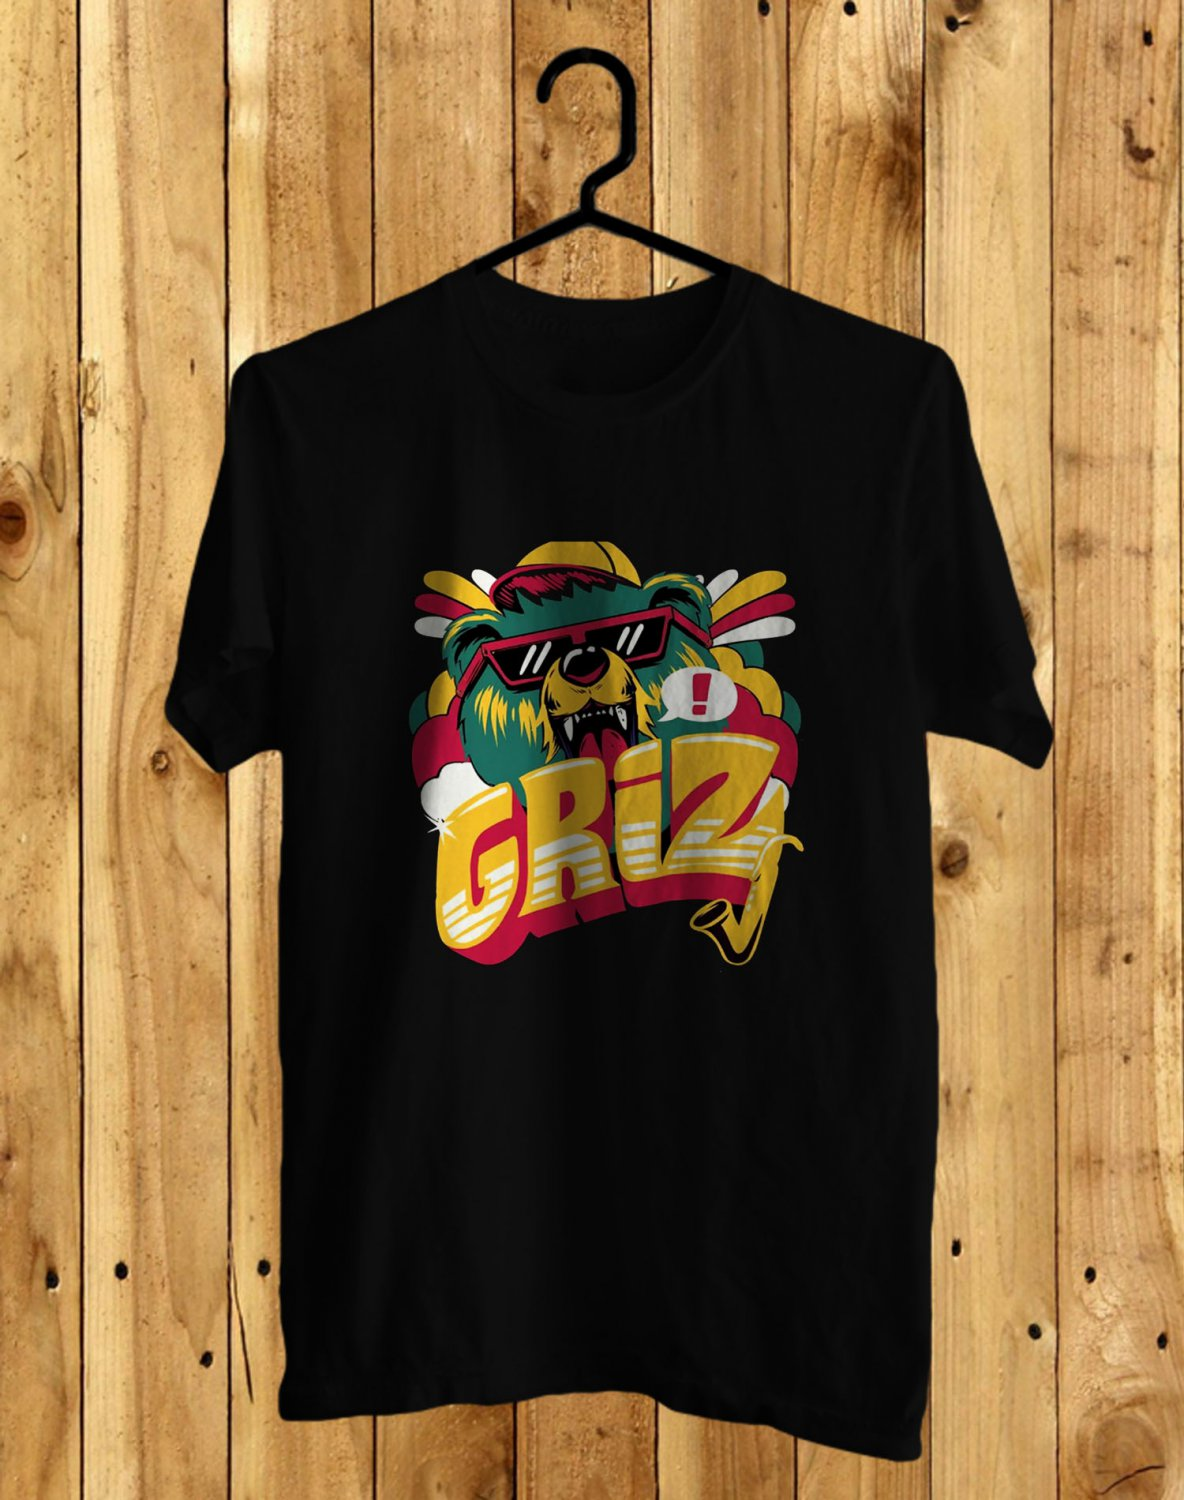 Grizz Black Tee's Front Side by Complexart